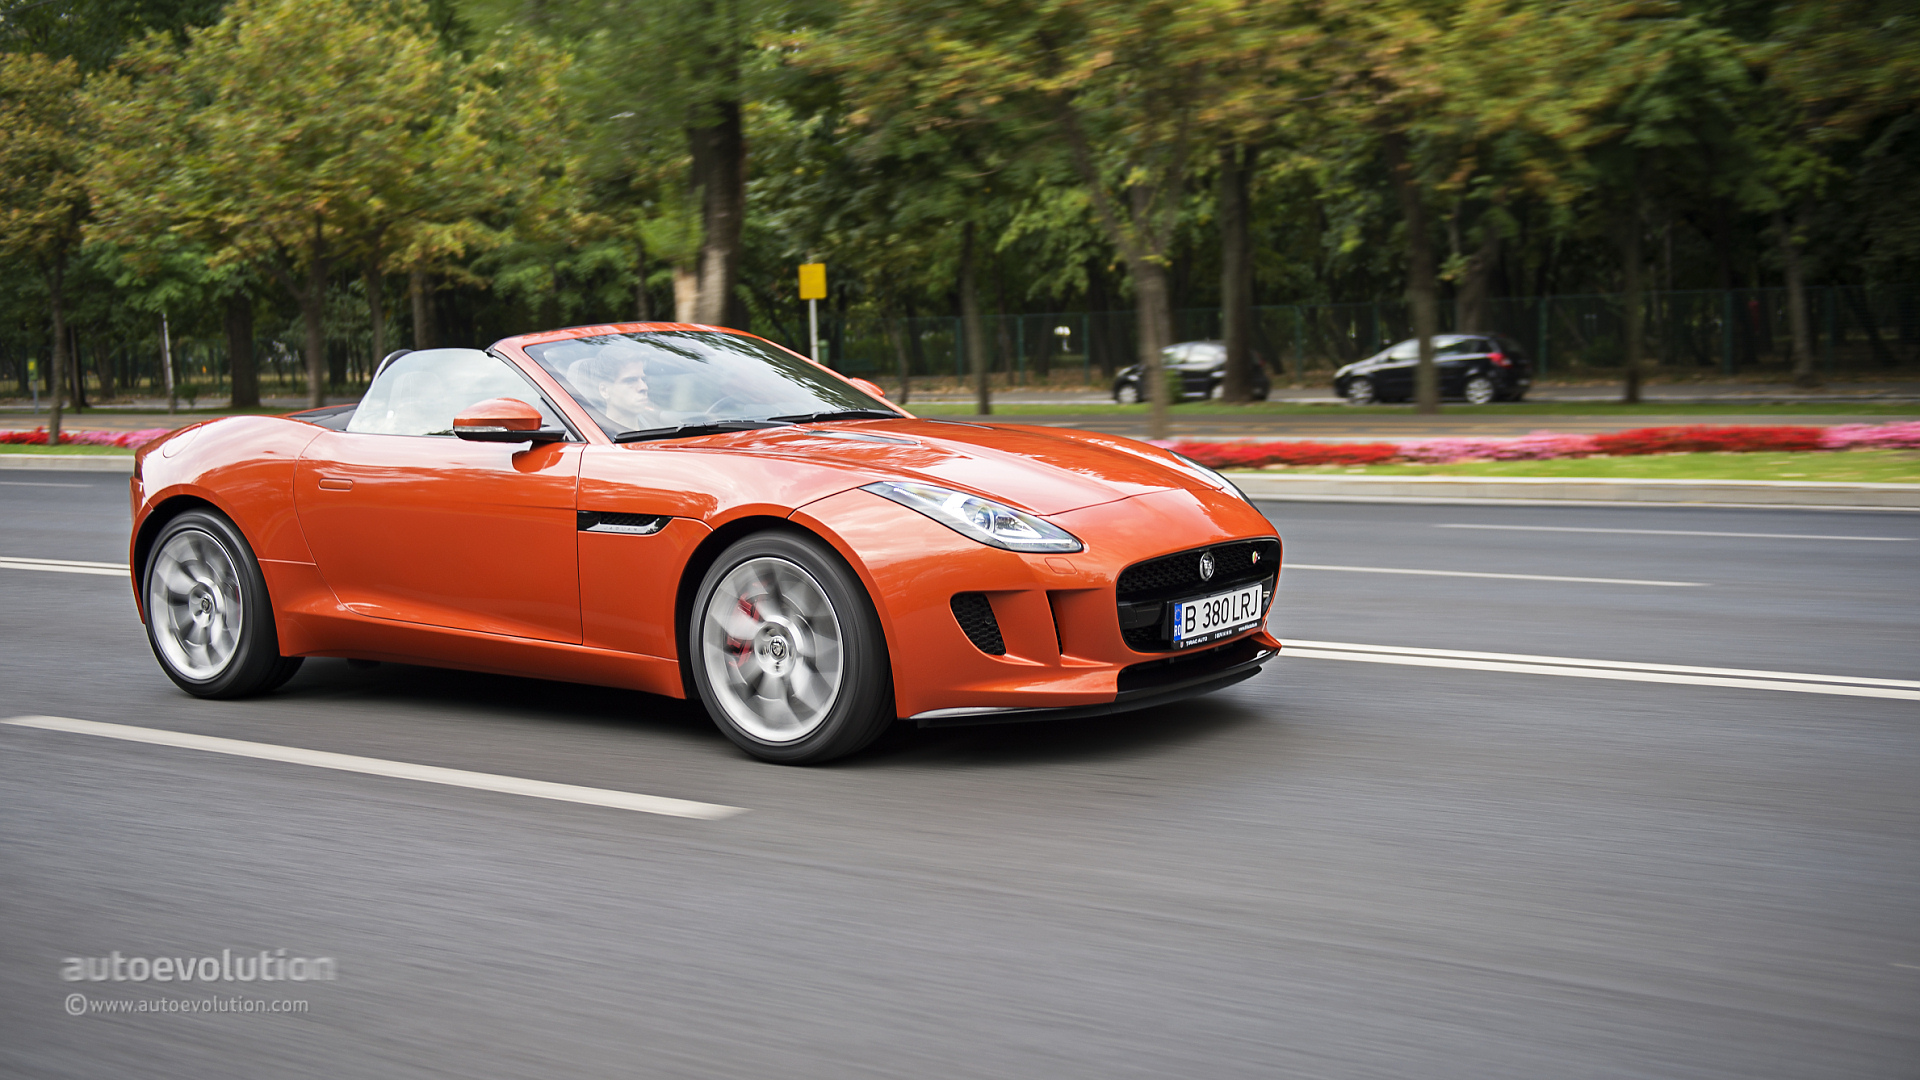 2019 Jaguar F Type V6 S photo - 5